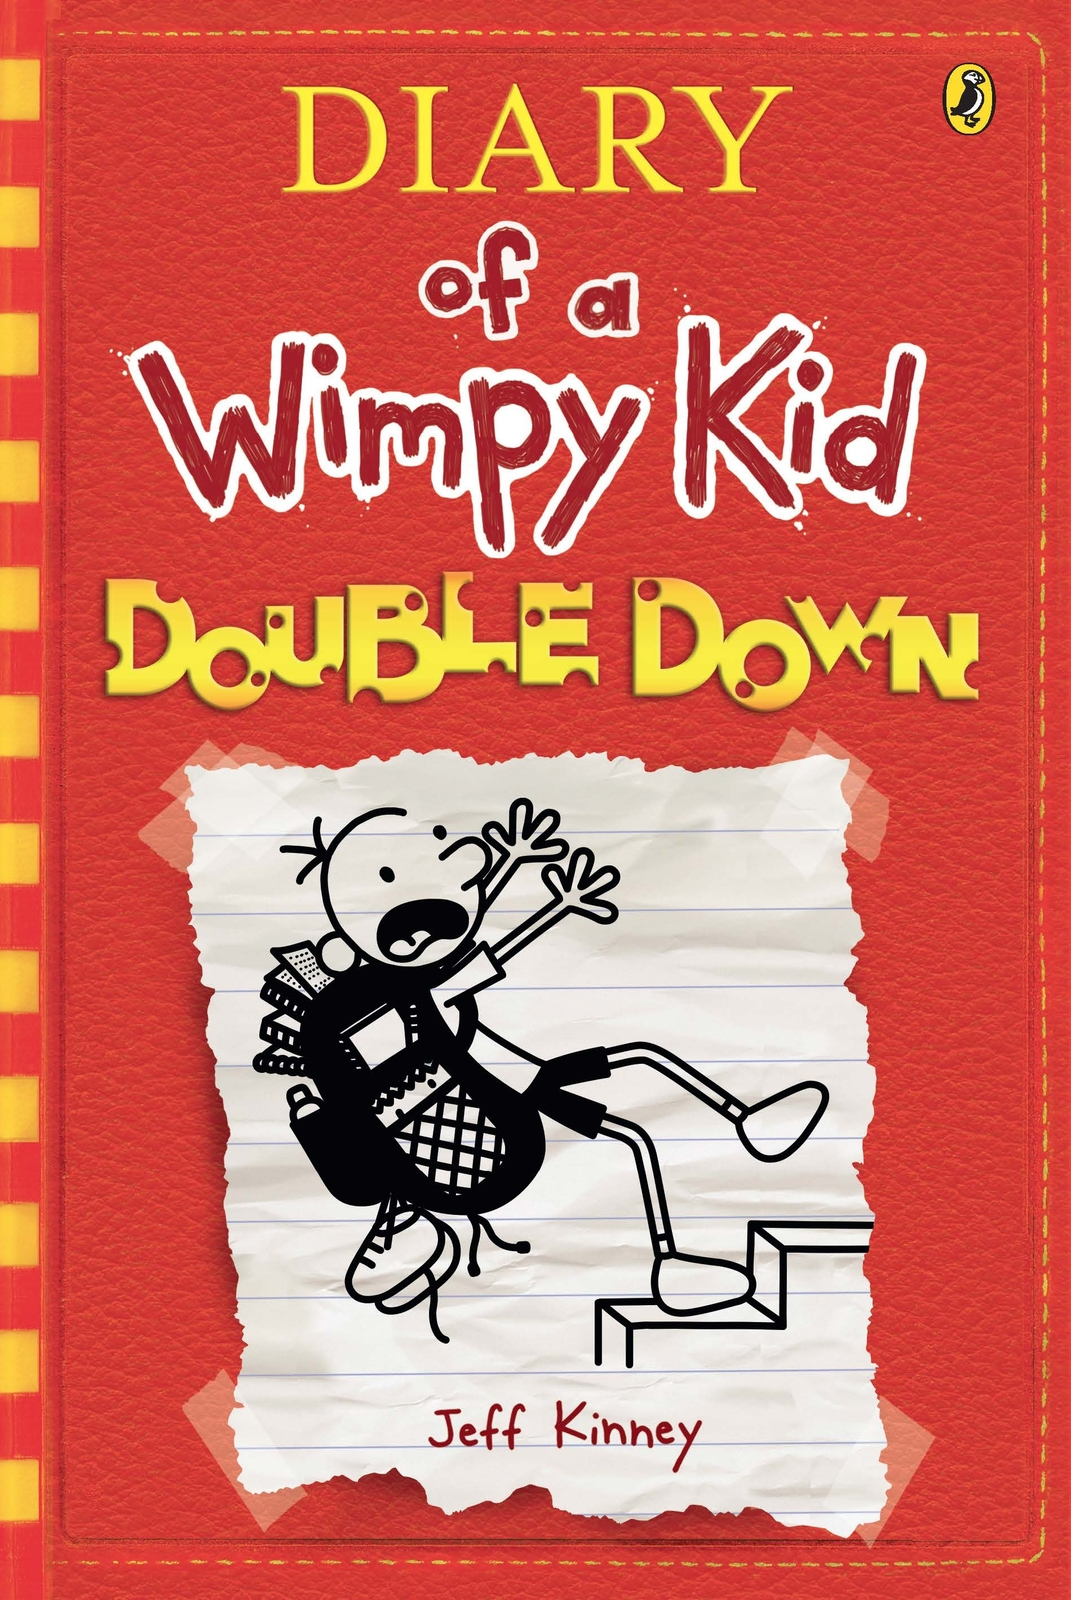 Double Down (Diary of a Wimpy Kid #11) by Jeff Kinney image